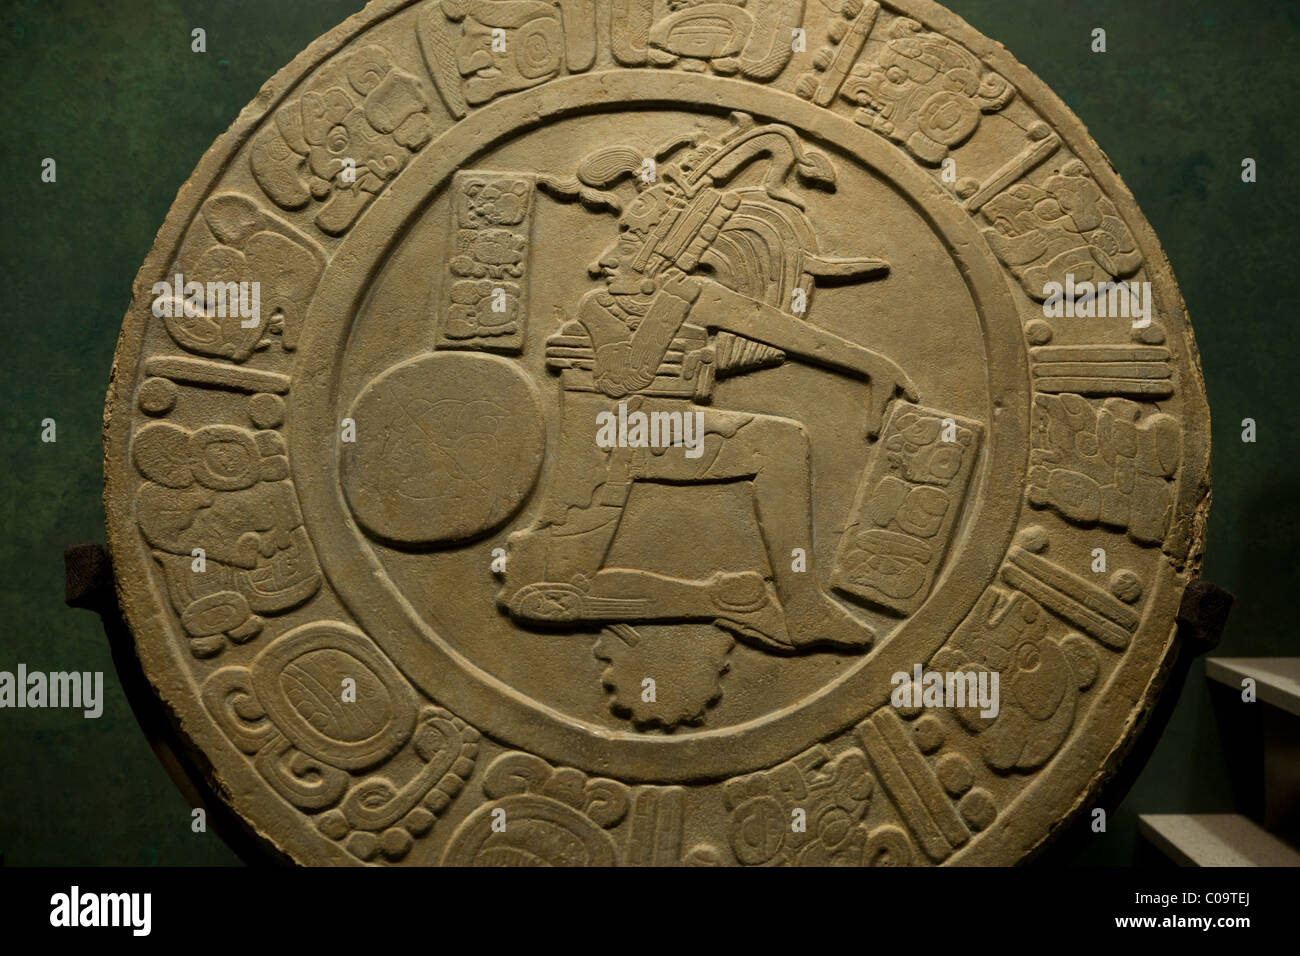 Mayan ballgame marker from the Maya site of Chinkultic, Chiapas, now in the National Museum of Anthropology, Mexico - Stock Image